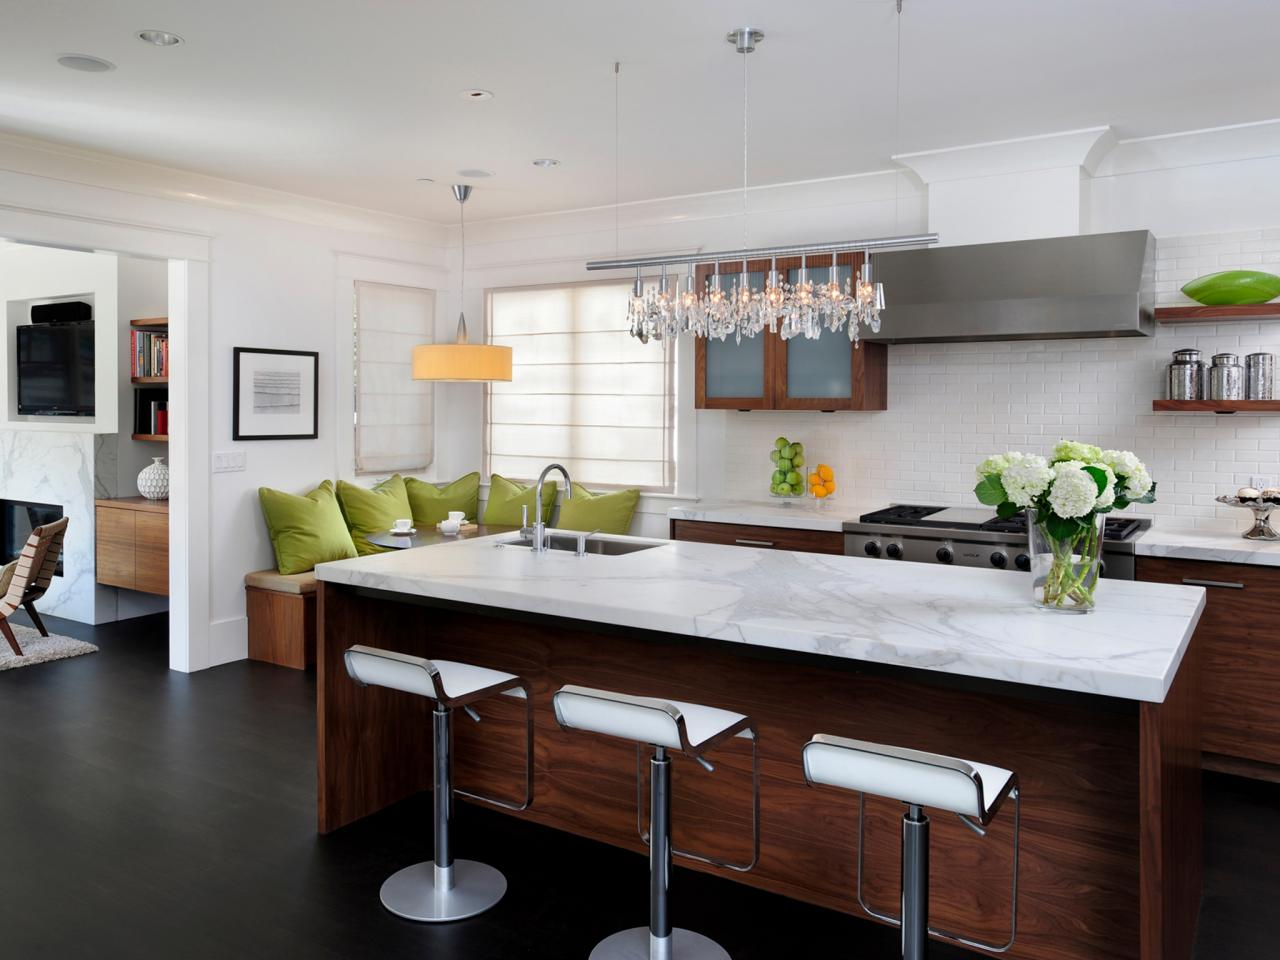 Most Amazing And Beautiful Kitchen Island Designs ... on Images Of Modern Kitchens  id=78695